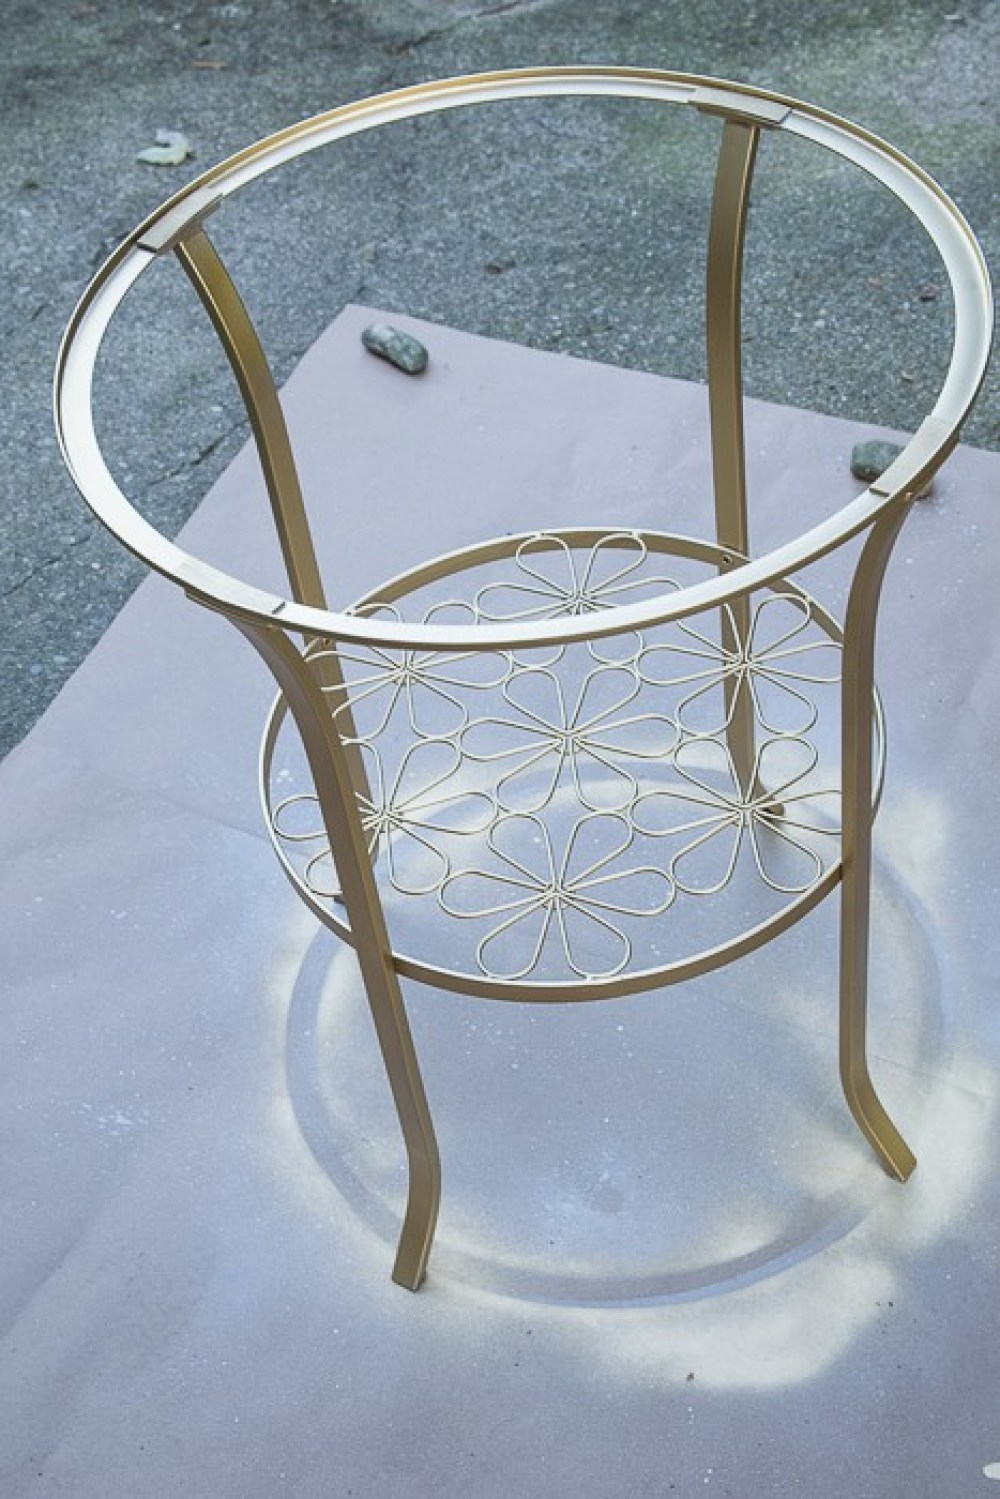 picture of round metal table spray painted gold